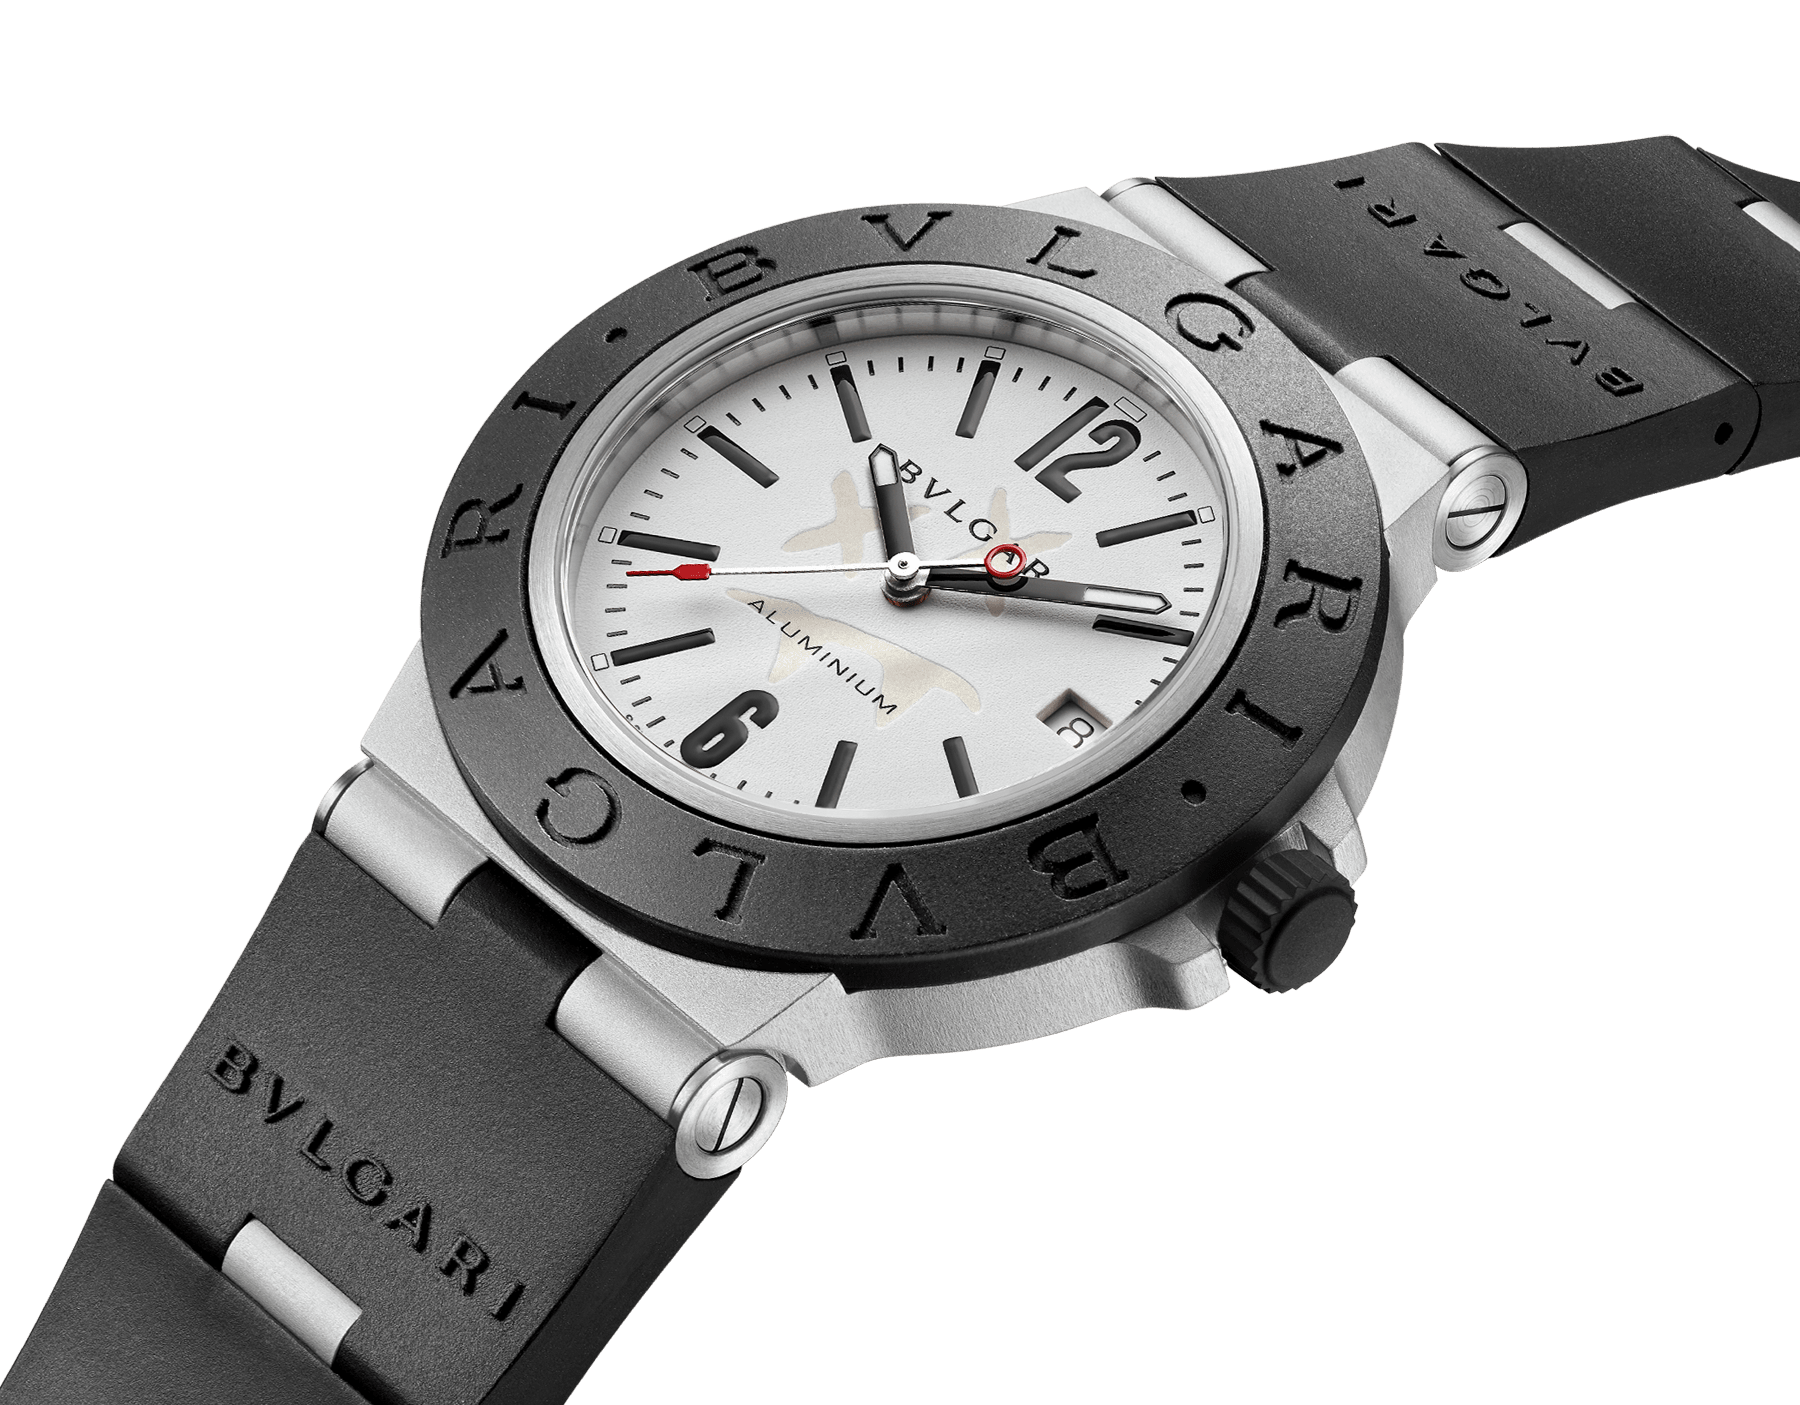 Bvlgari Aluminium Steve Aoki Limited Edition watch with mechanical movement with automatic winding, 40 mm aluminum and titanium case, black rubber bezel with BVLGARI BVLGARI engraving, white SNL dial with special Steve Aoki logo and black rubber bracelet. Water-resistant up to 100 meters. 103539 image 3